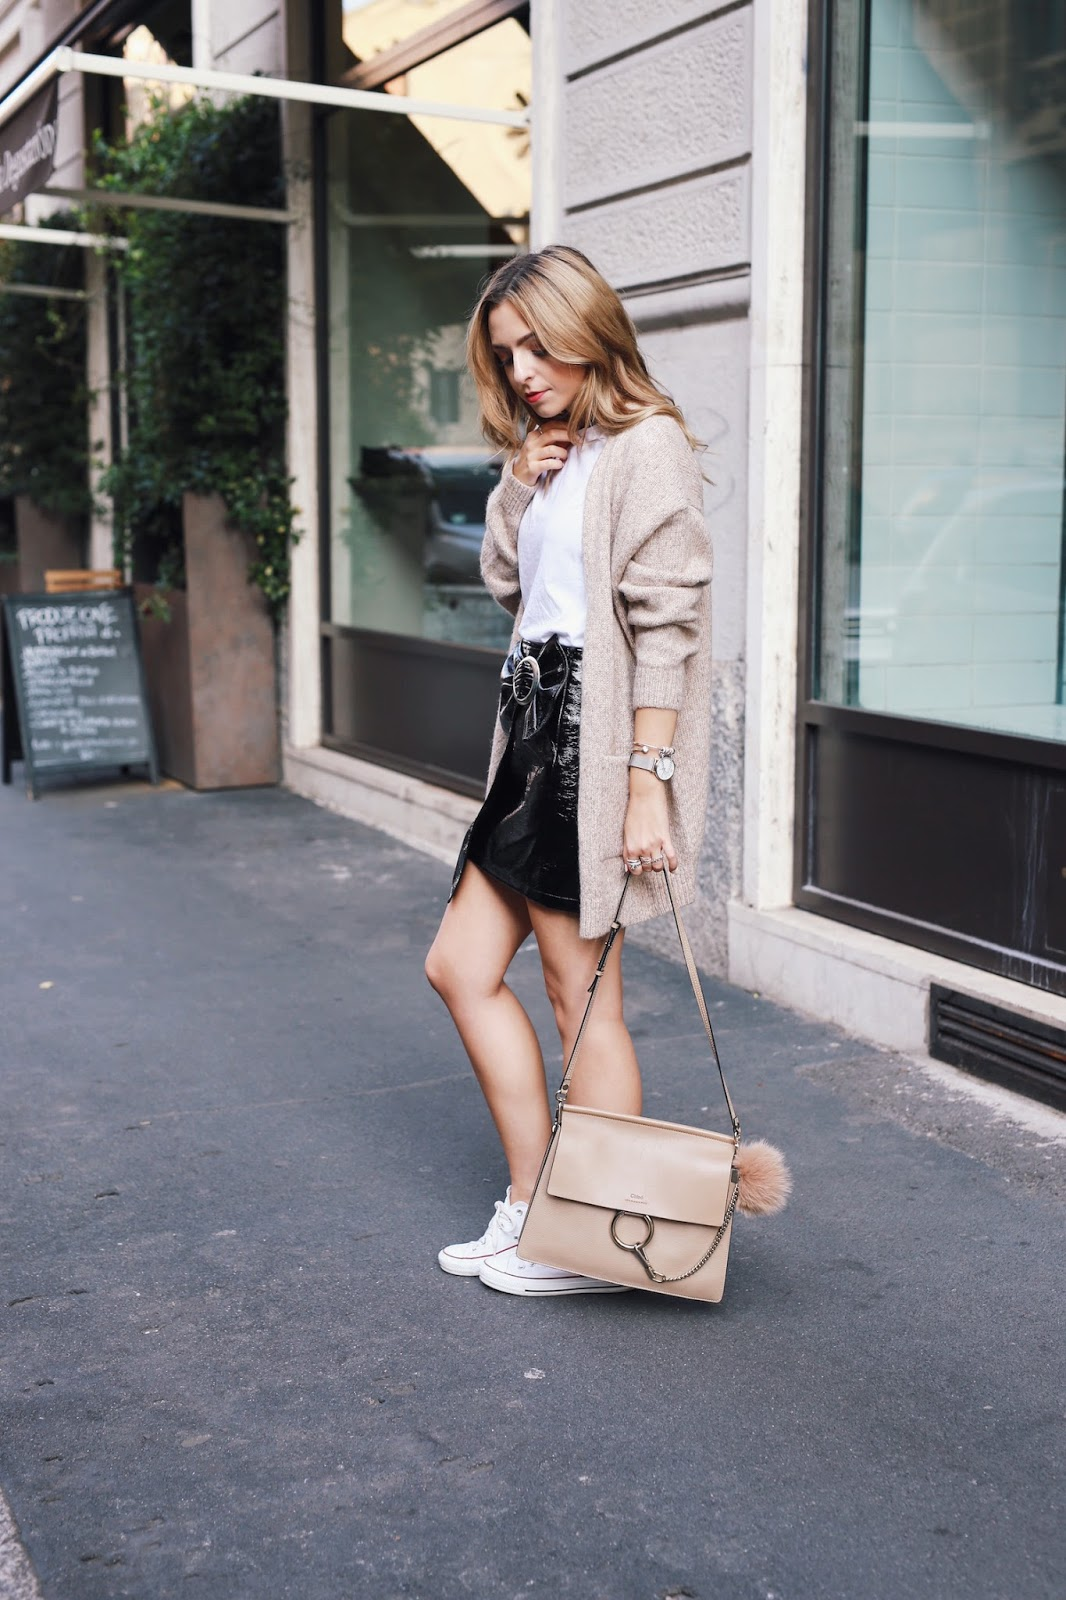 Milan Fashion Week Street Style Vinyl Skirt Outfit 07 Want Get Repeat